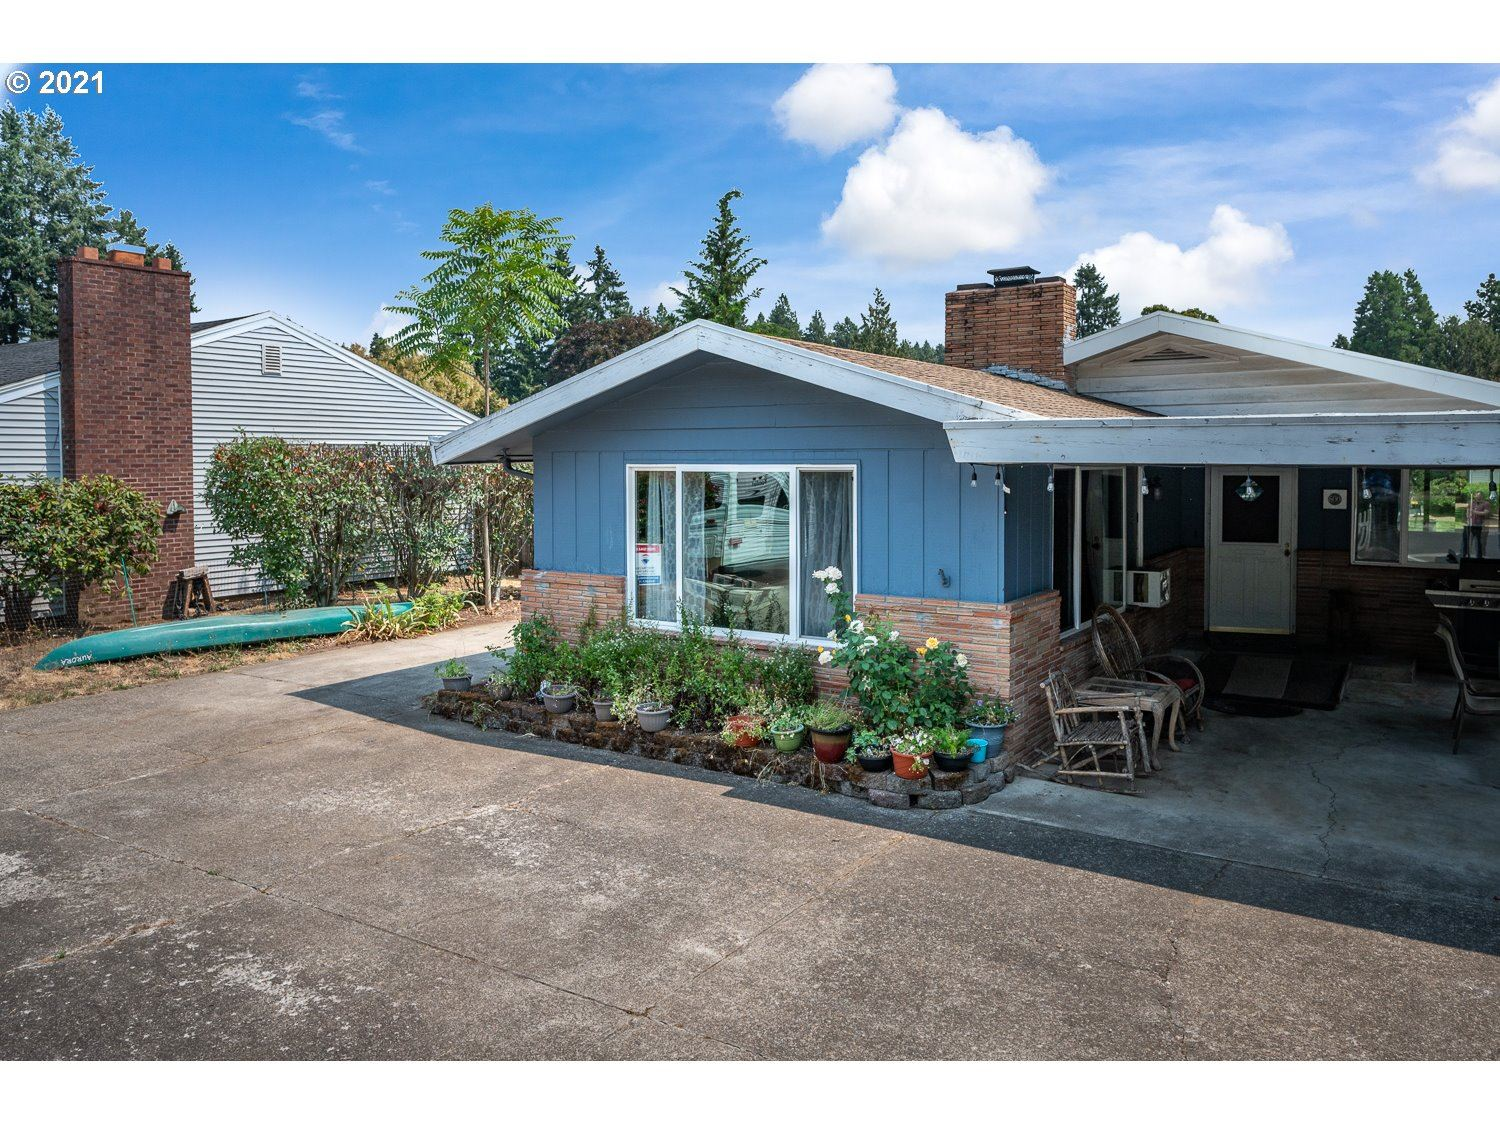 Photo of 600 N JUNIPER ST, Canby, OR 97013 (MLS # 21067089)